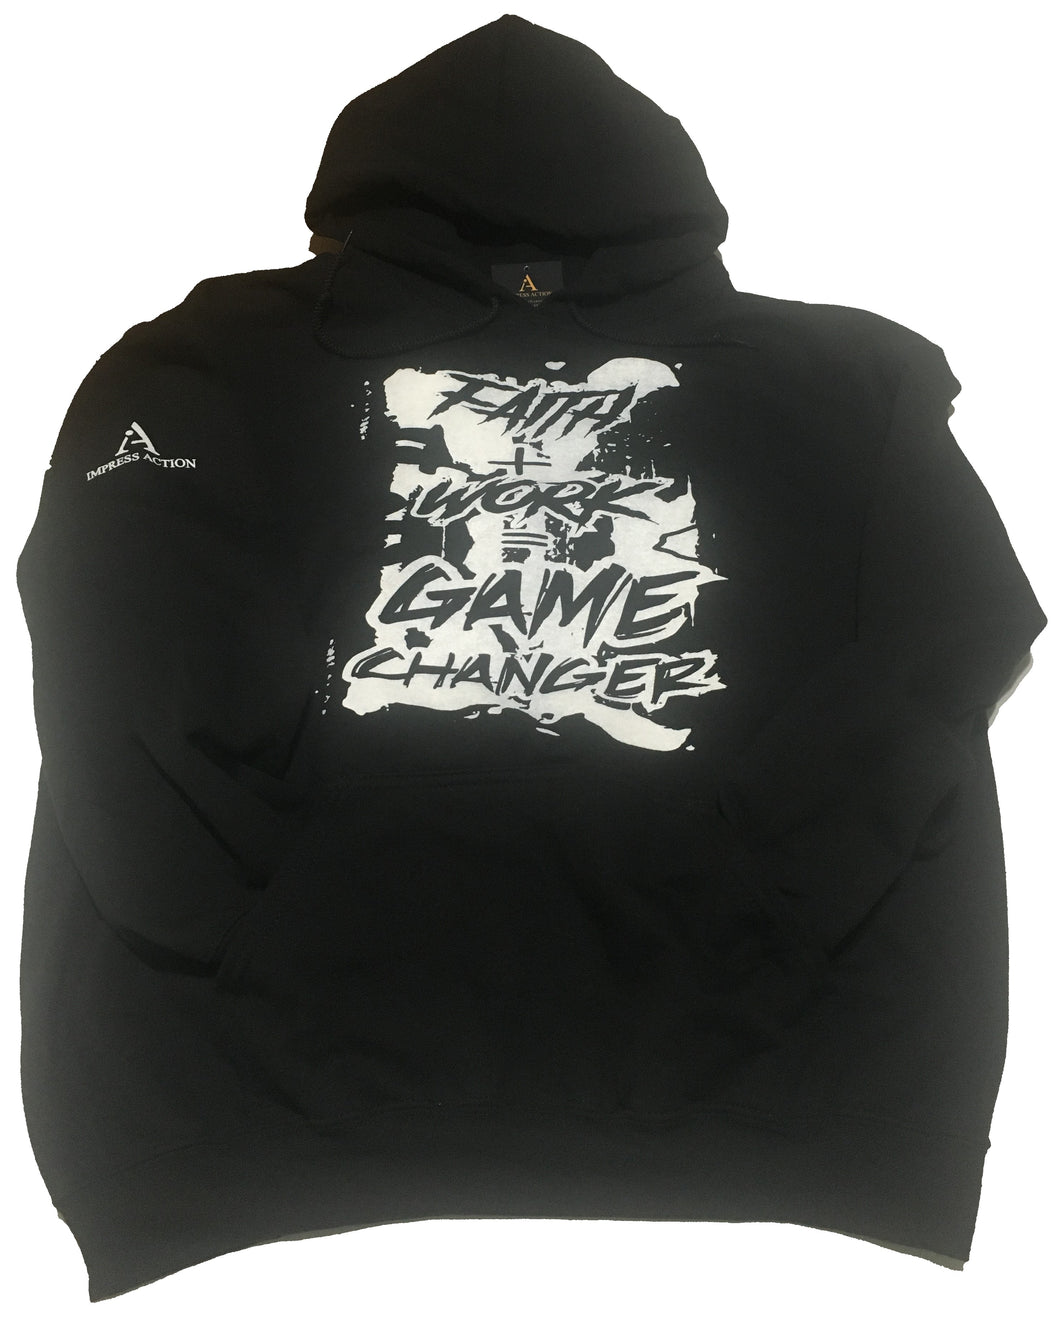 Faith + Work = Game Changer White/Black Hoodie